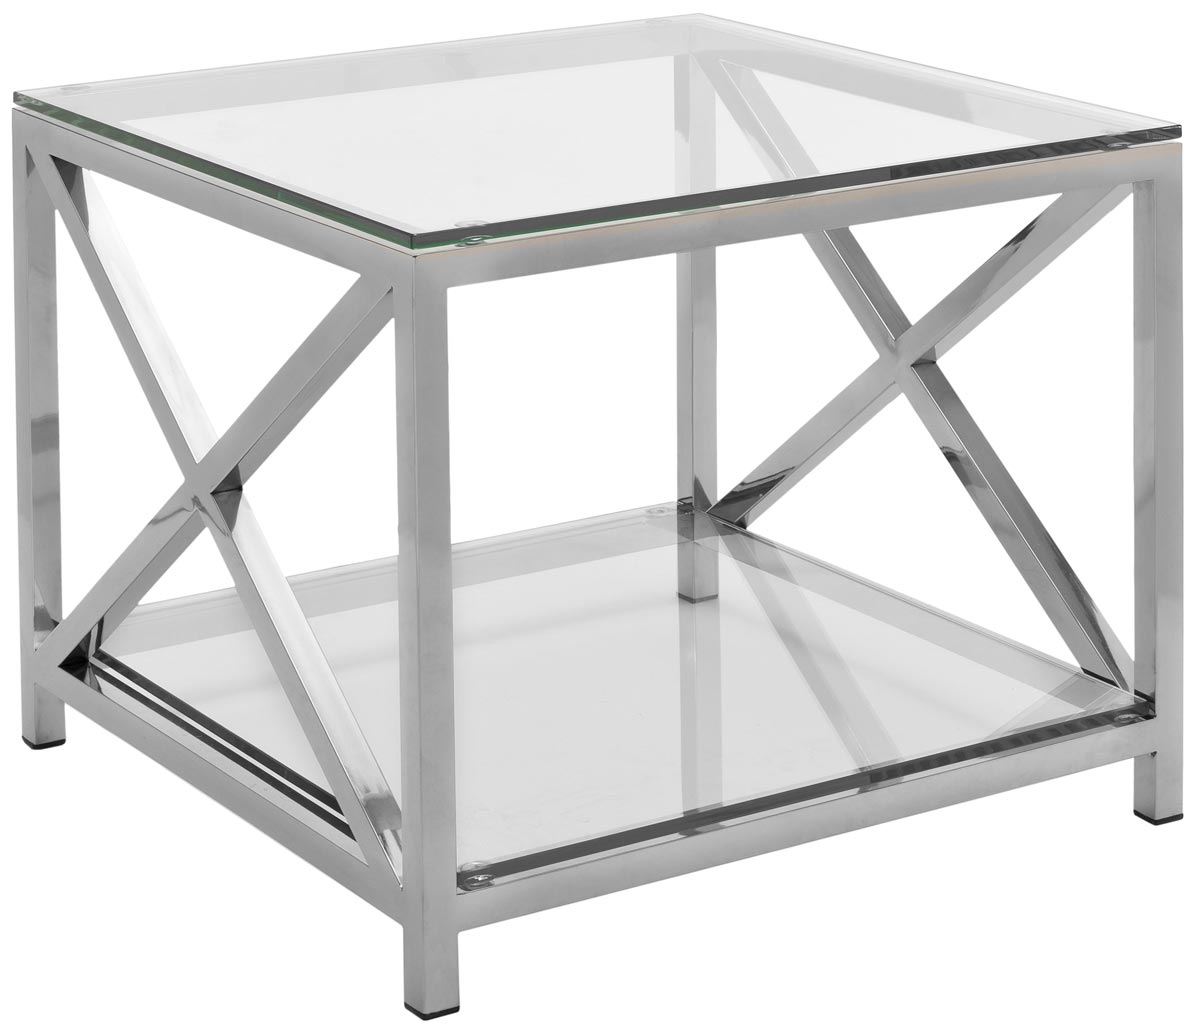 ikea wooden table and chairs the outrageous favorite end vibrant chrome glass architecture modern home design classy idea clearance lawn furniture triangle side metal legs